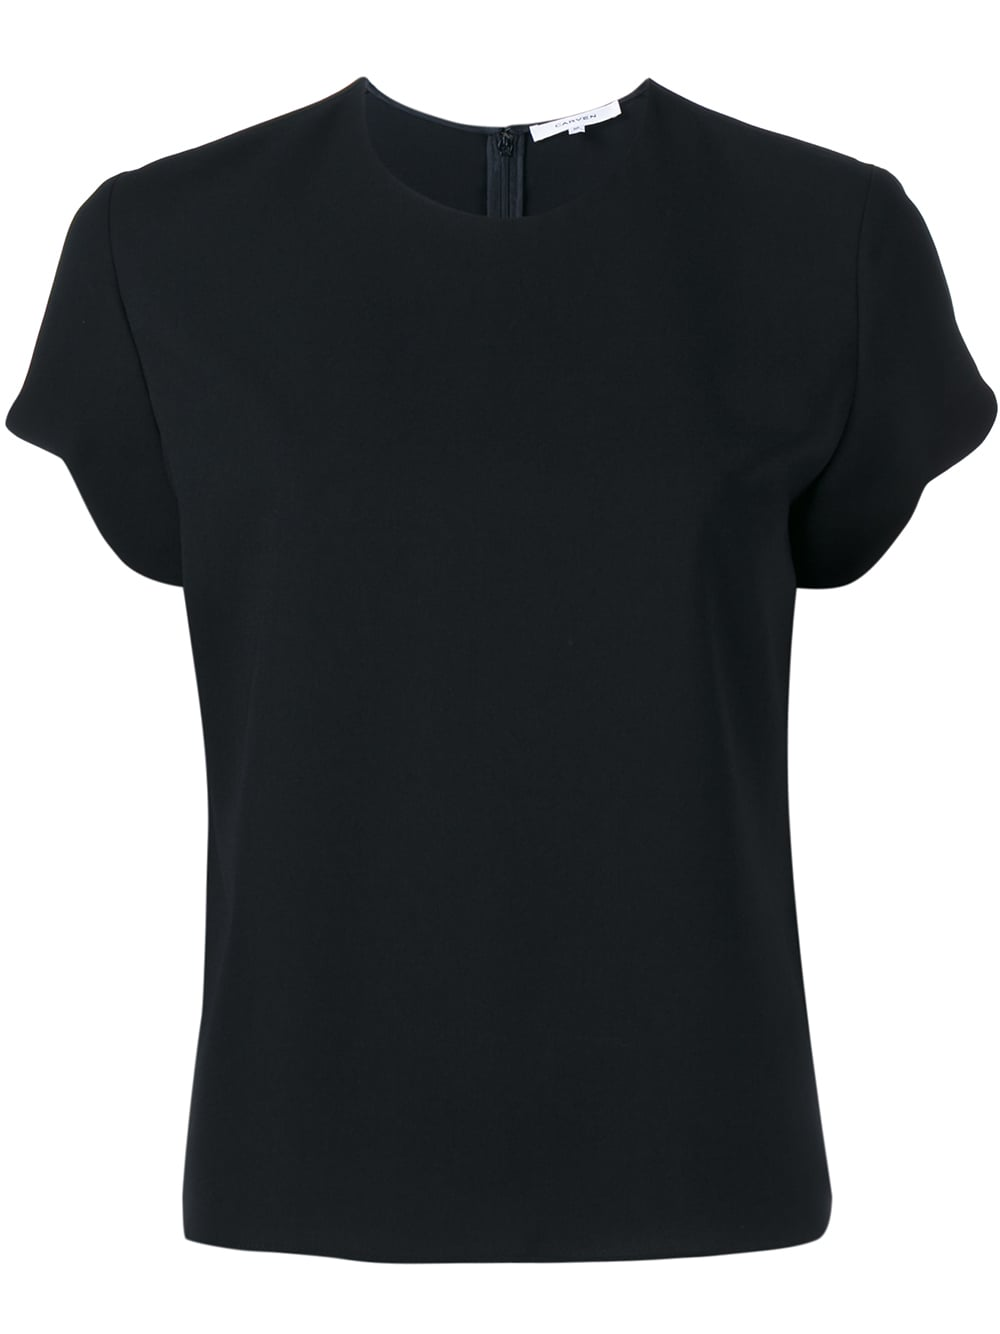 Carven top - Browns.jpg